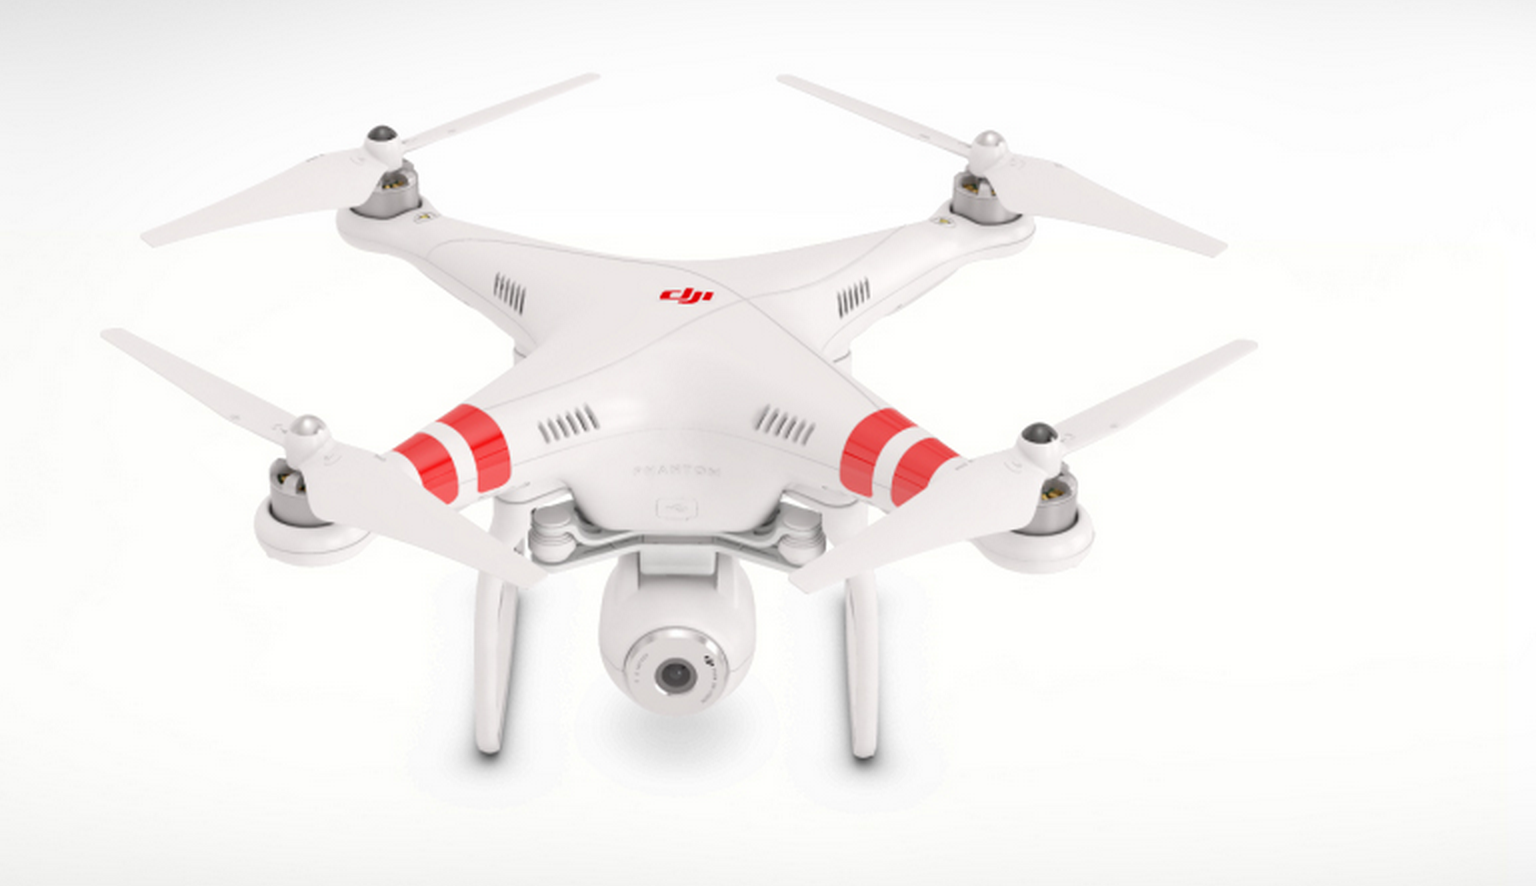 Consumer drones are coming, and they will change everything